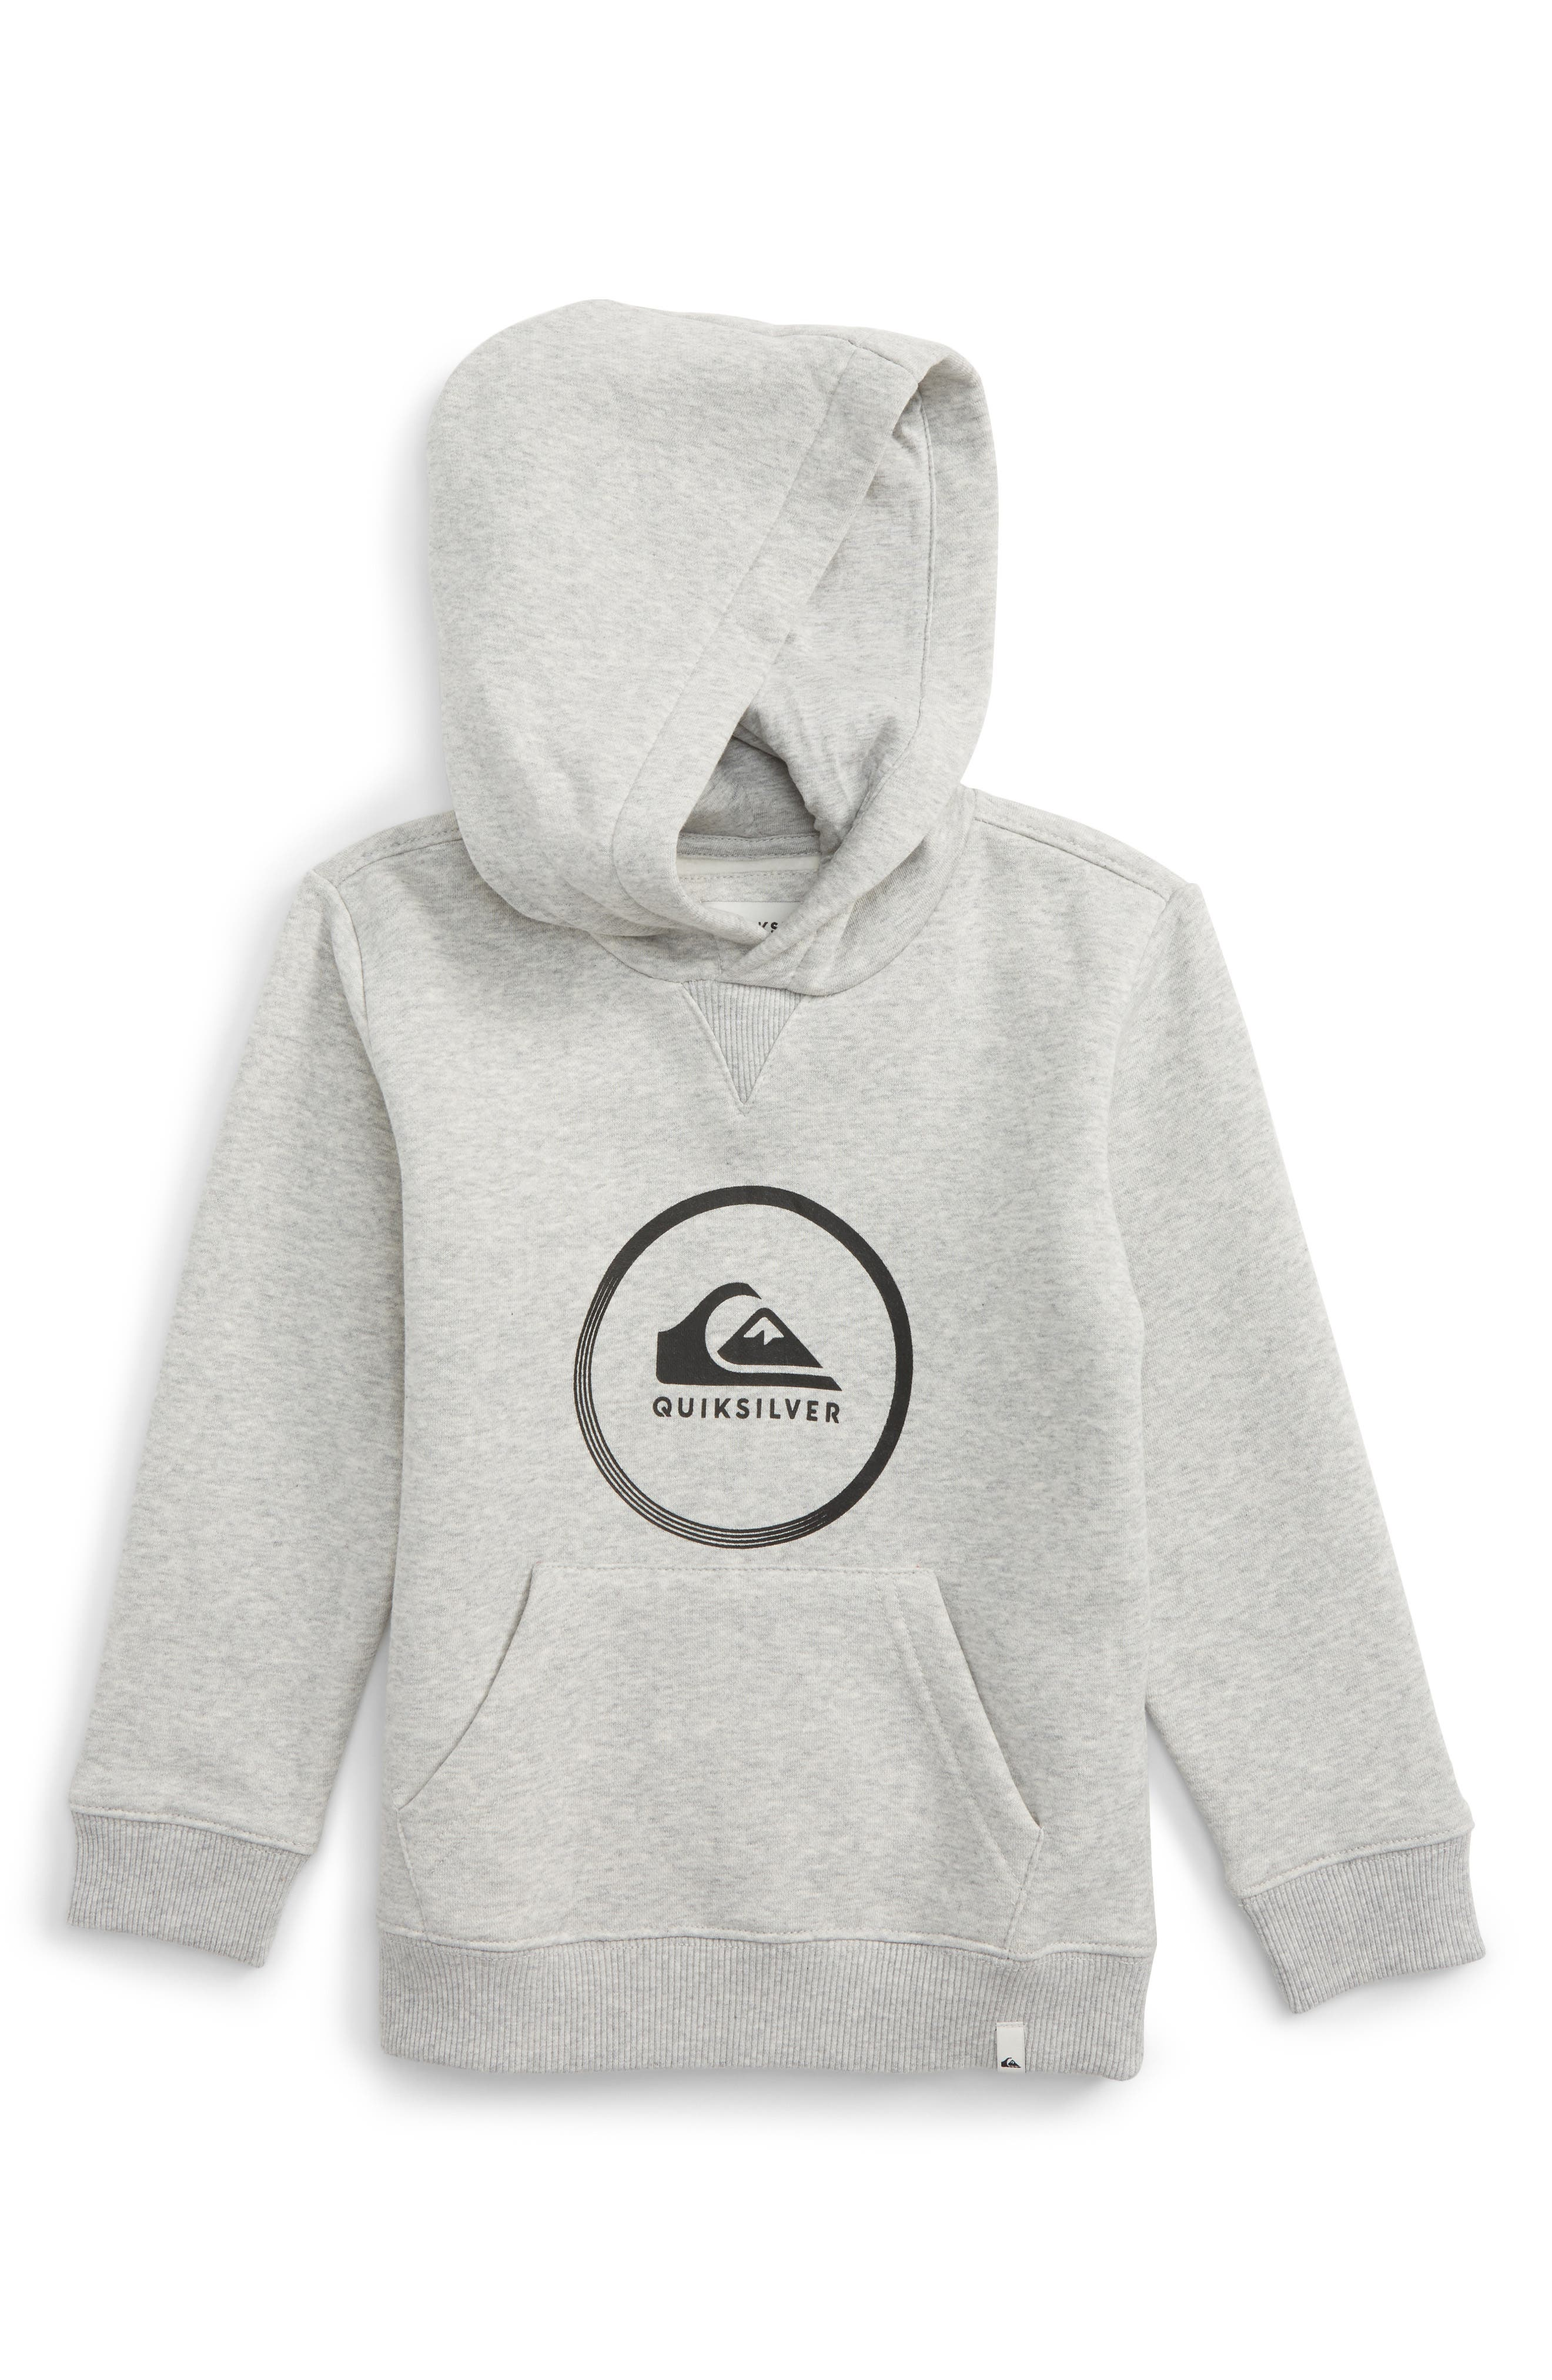 Quiksilver Logo Hoodie (Toddler Boys & Little Boys)